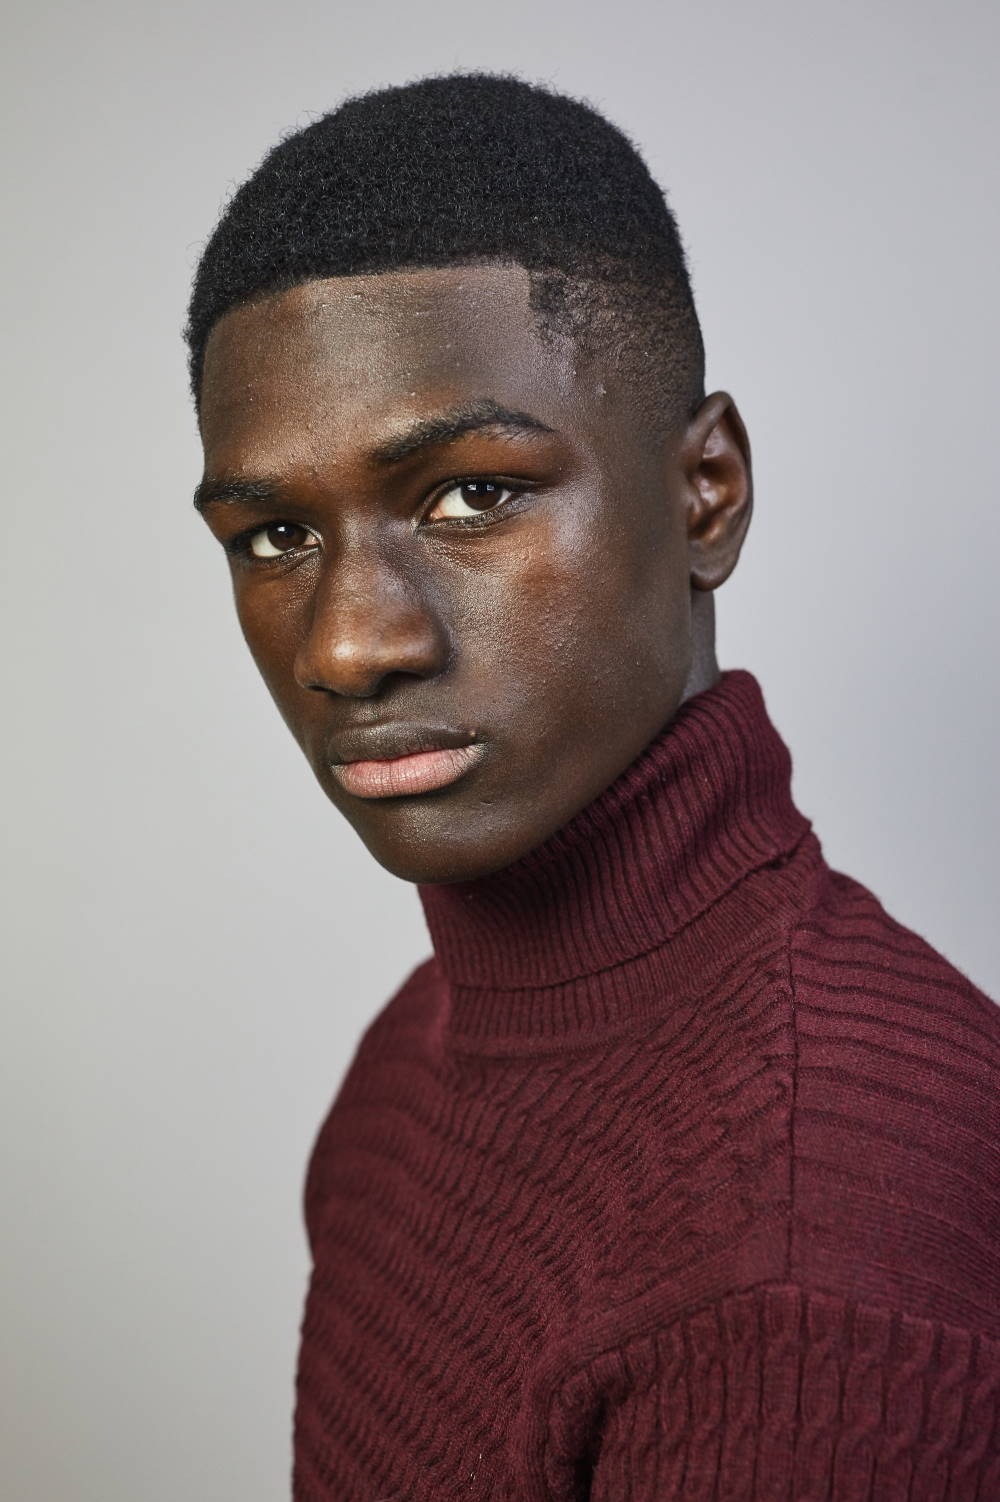 eniola model new face fashion unsigned group